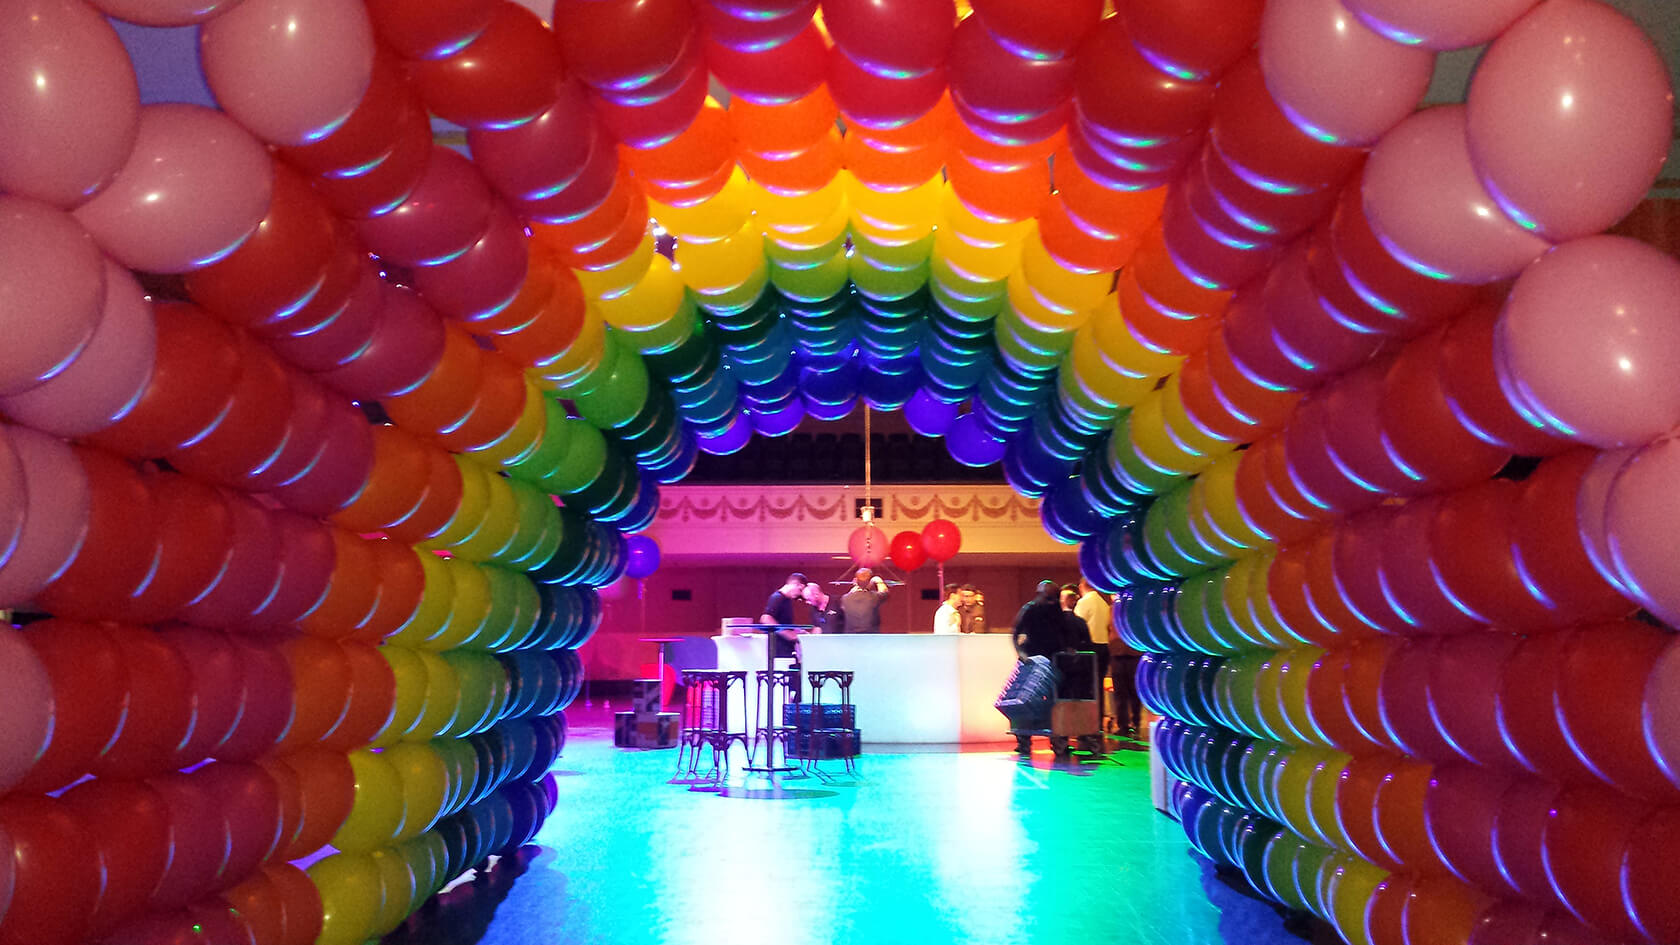 Party supply store - see our events - spectacular organic balloon installations - shivoo balloons and decor specialists in coburg north